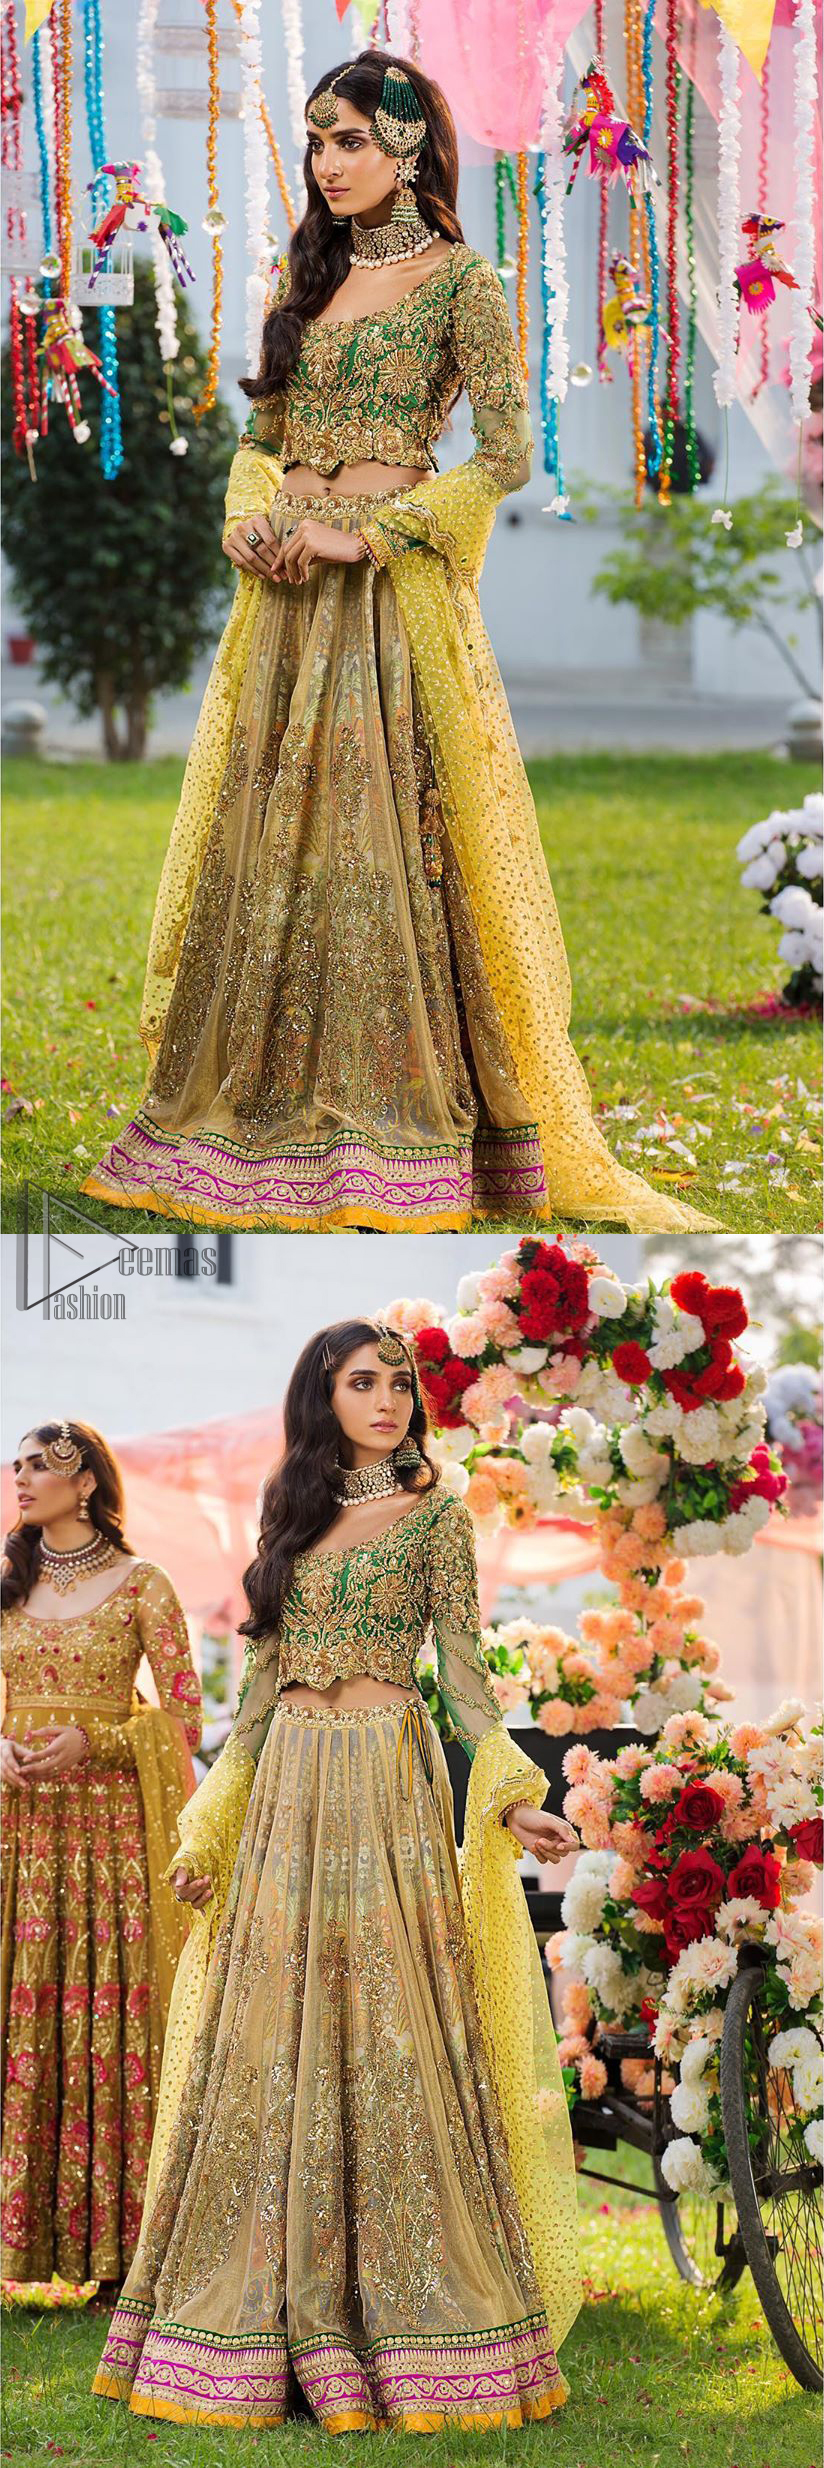 A perfectly pretty combination for a mehndi function. Gussy up the glamour with this intricate embroidered blouse accentuated with golden kora, dabka and tilla work and scalp finishing. The lehenga is emphasized with traditional style done with zardozi work in the shade of golden. Furthermore it is adorned with multiple color applique bottom which complete the look. It is coordinated with yellow dupatta sprinkled with sequins on the ground and scallop border.